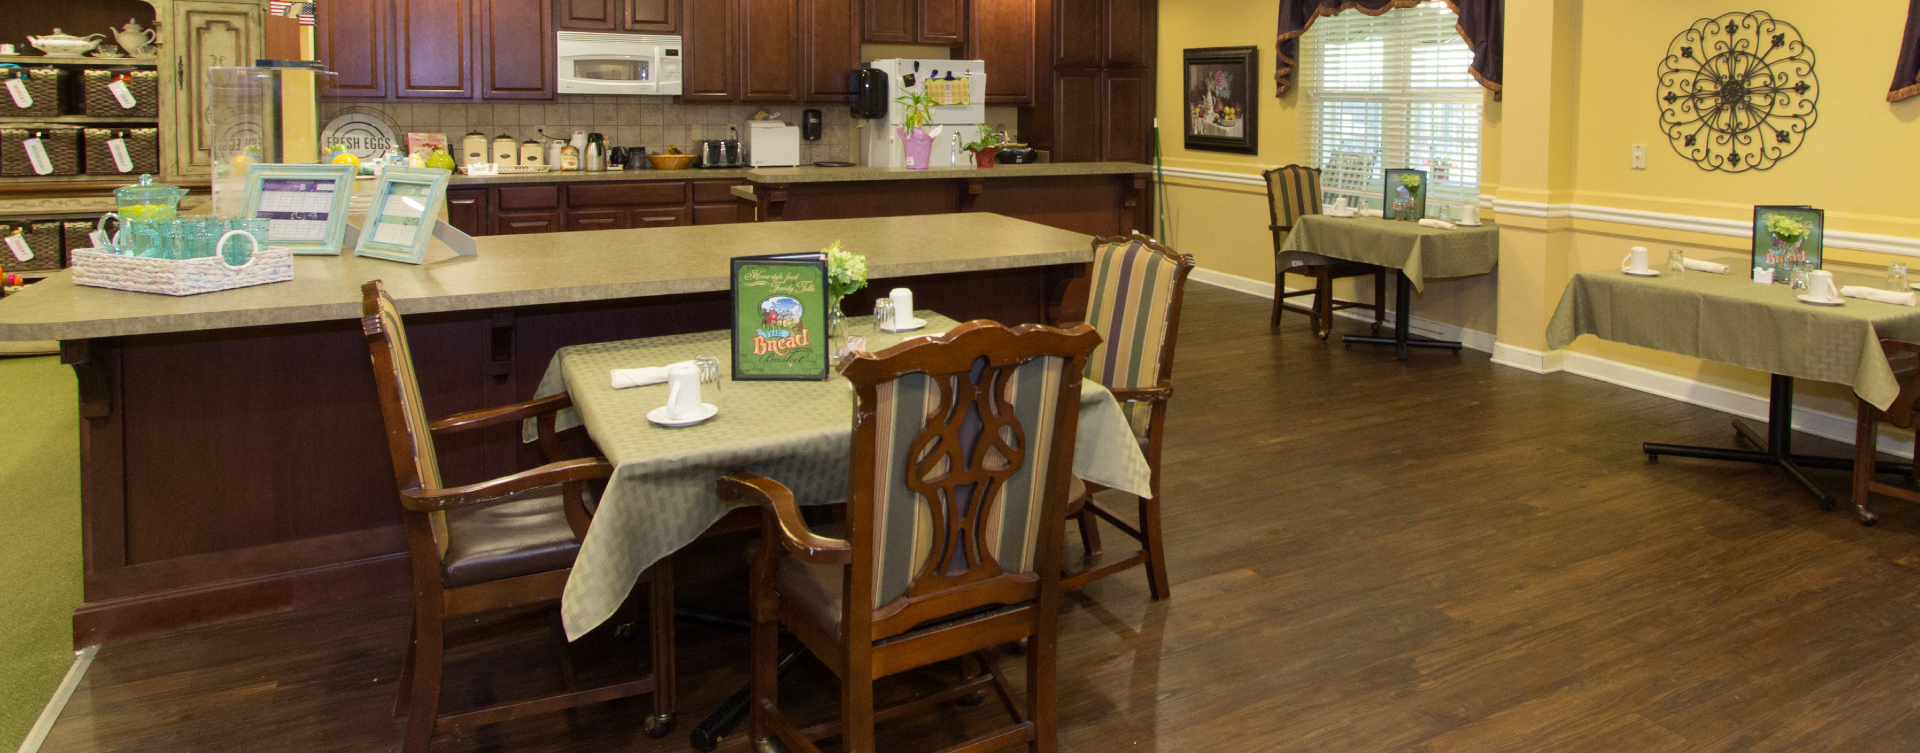 Mary B's country kitchen evokes a sense of home and reconnects residents to past life skills at Bickford of St. Charles